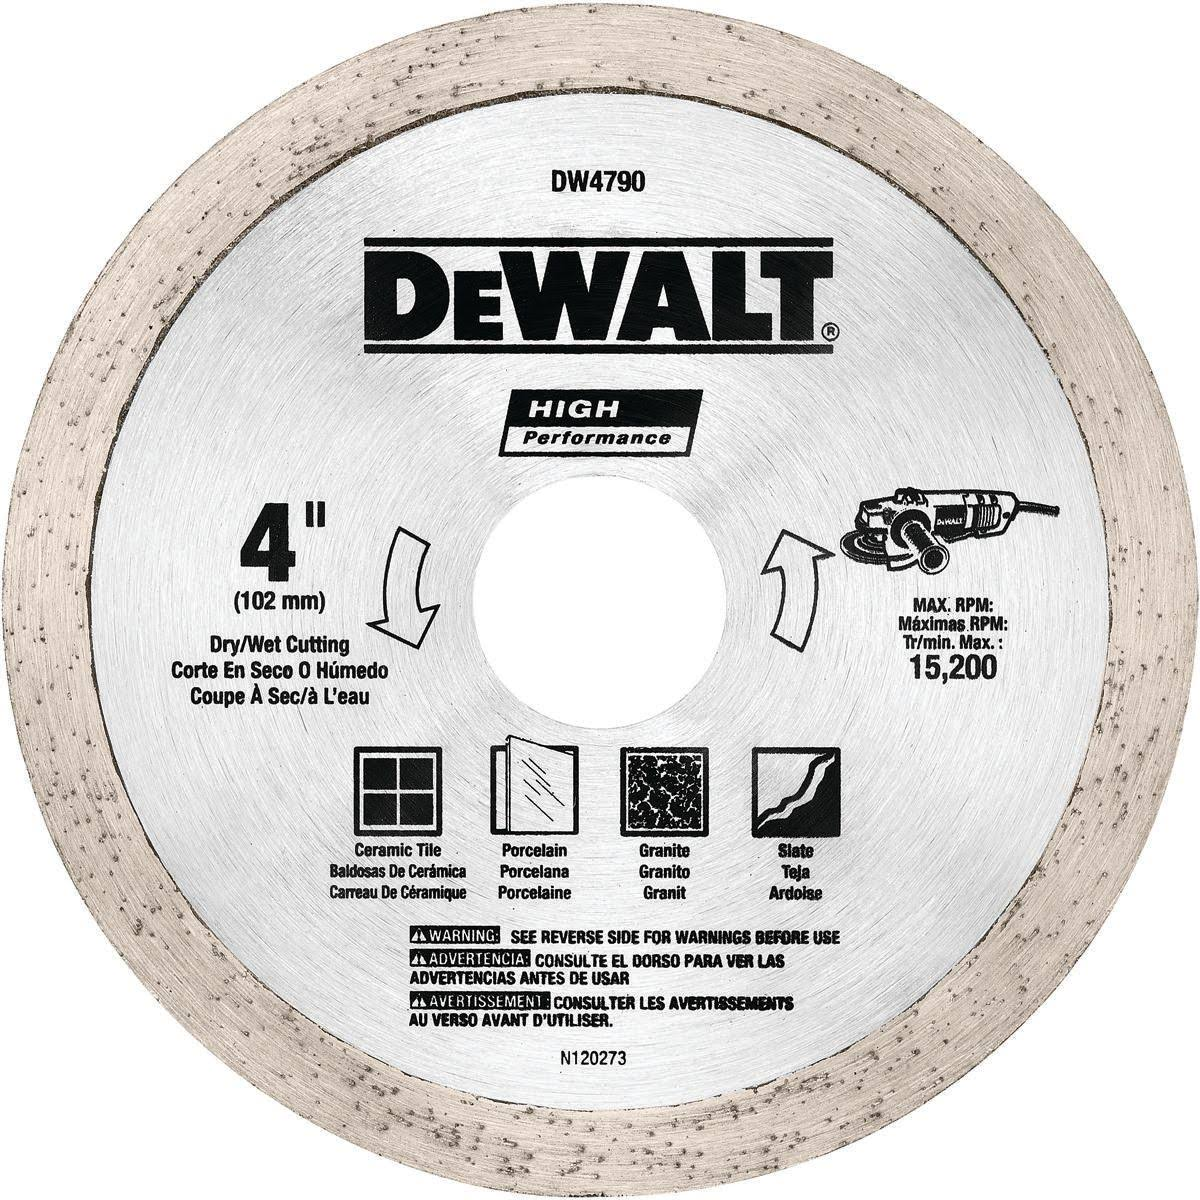 Dewalt Diamond Tile Blade Circular Saw Blades - 4""